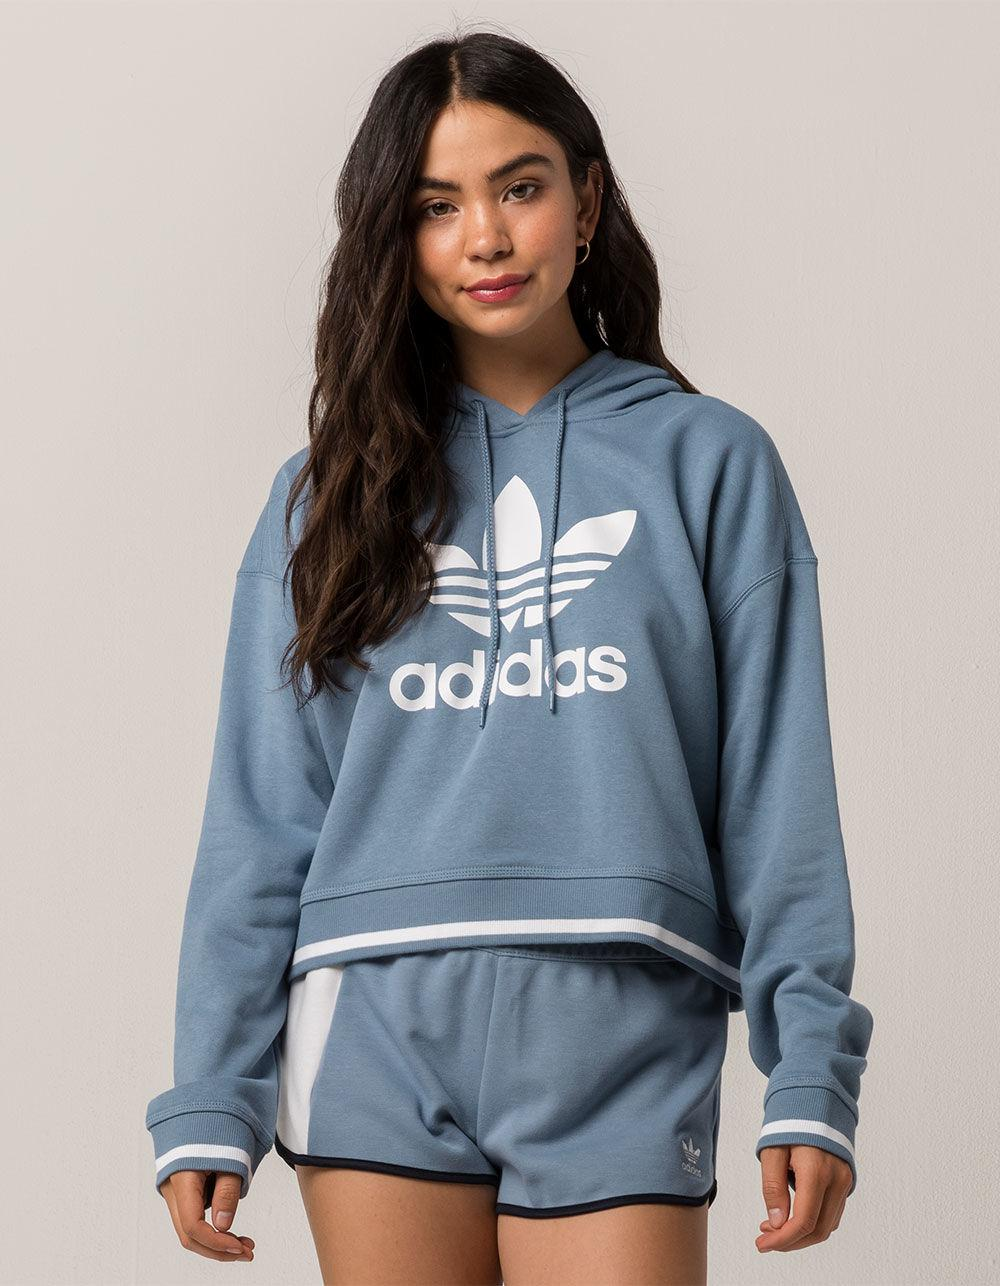 Lyst - adidas Active Icons Slate Blue Womens Crop Hoodie in Blue 6983550380